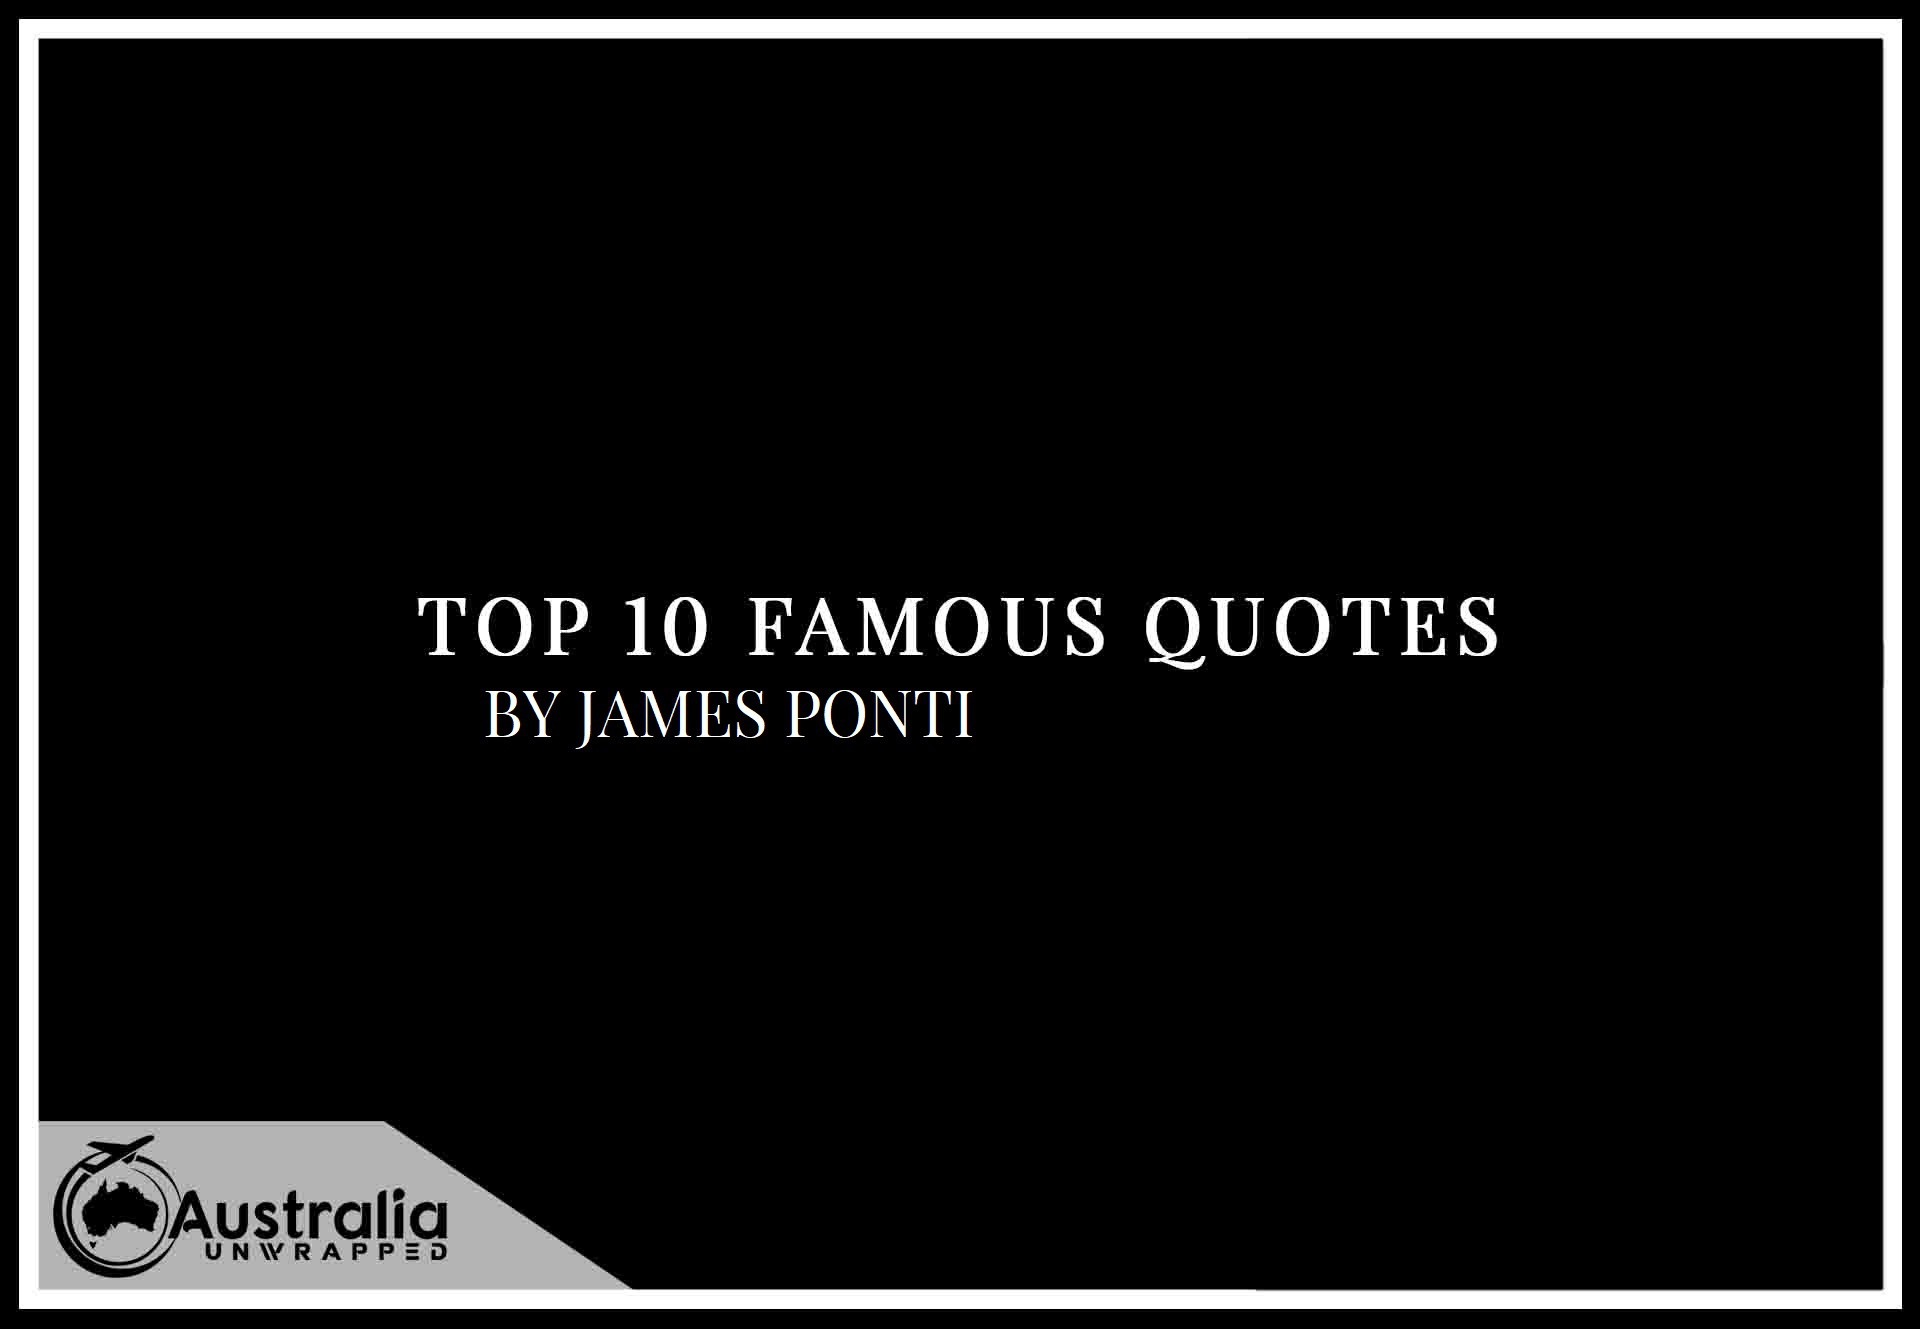 Top 10 Famous Quotes by Author James Ponti